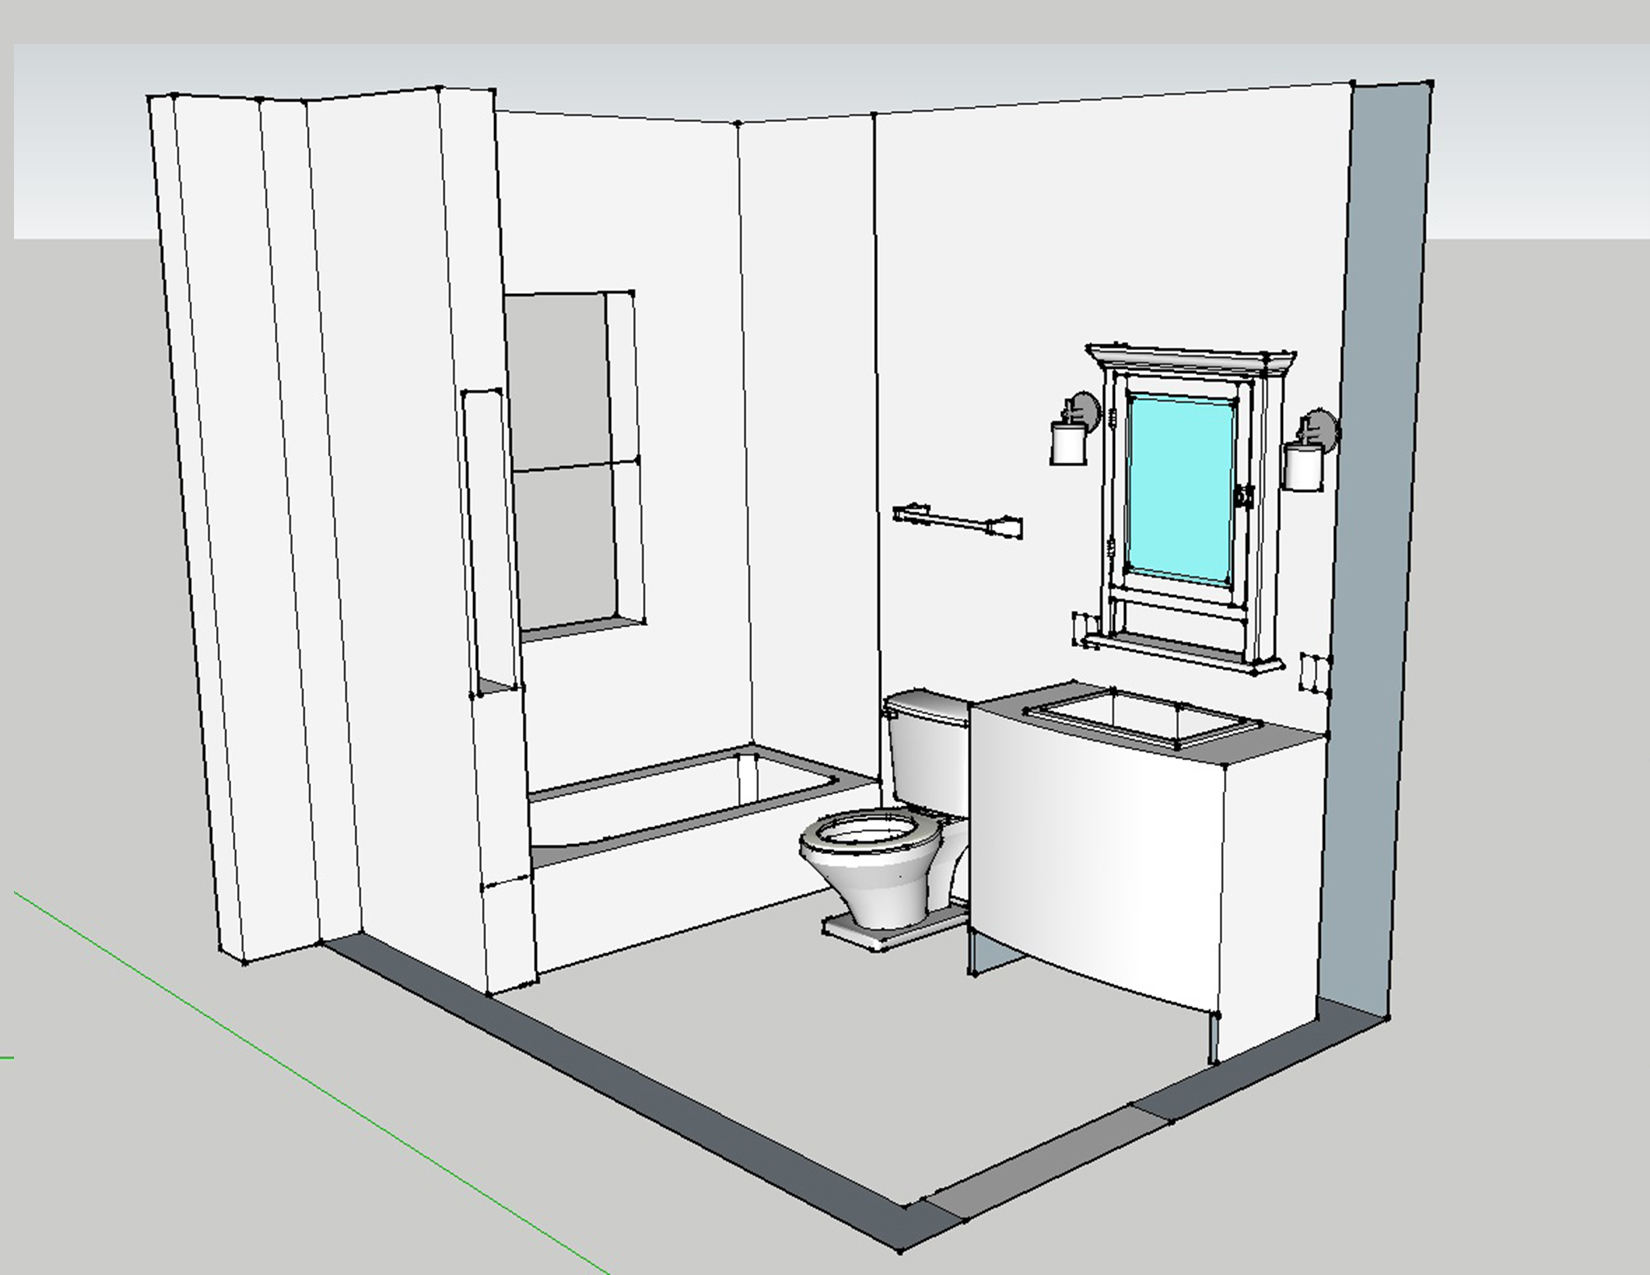 Sketchup up and adam ries for Bathroom layout